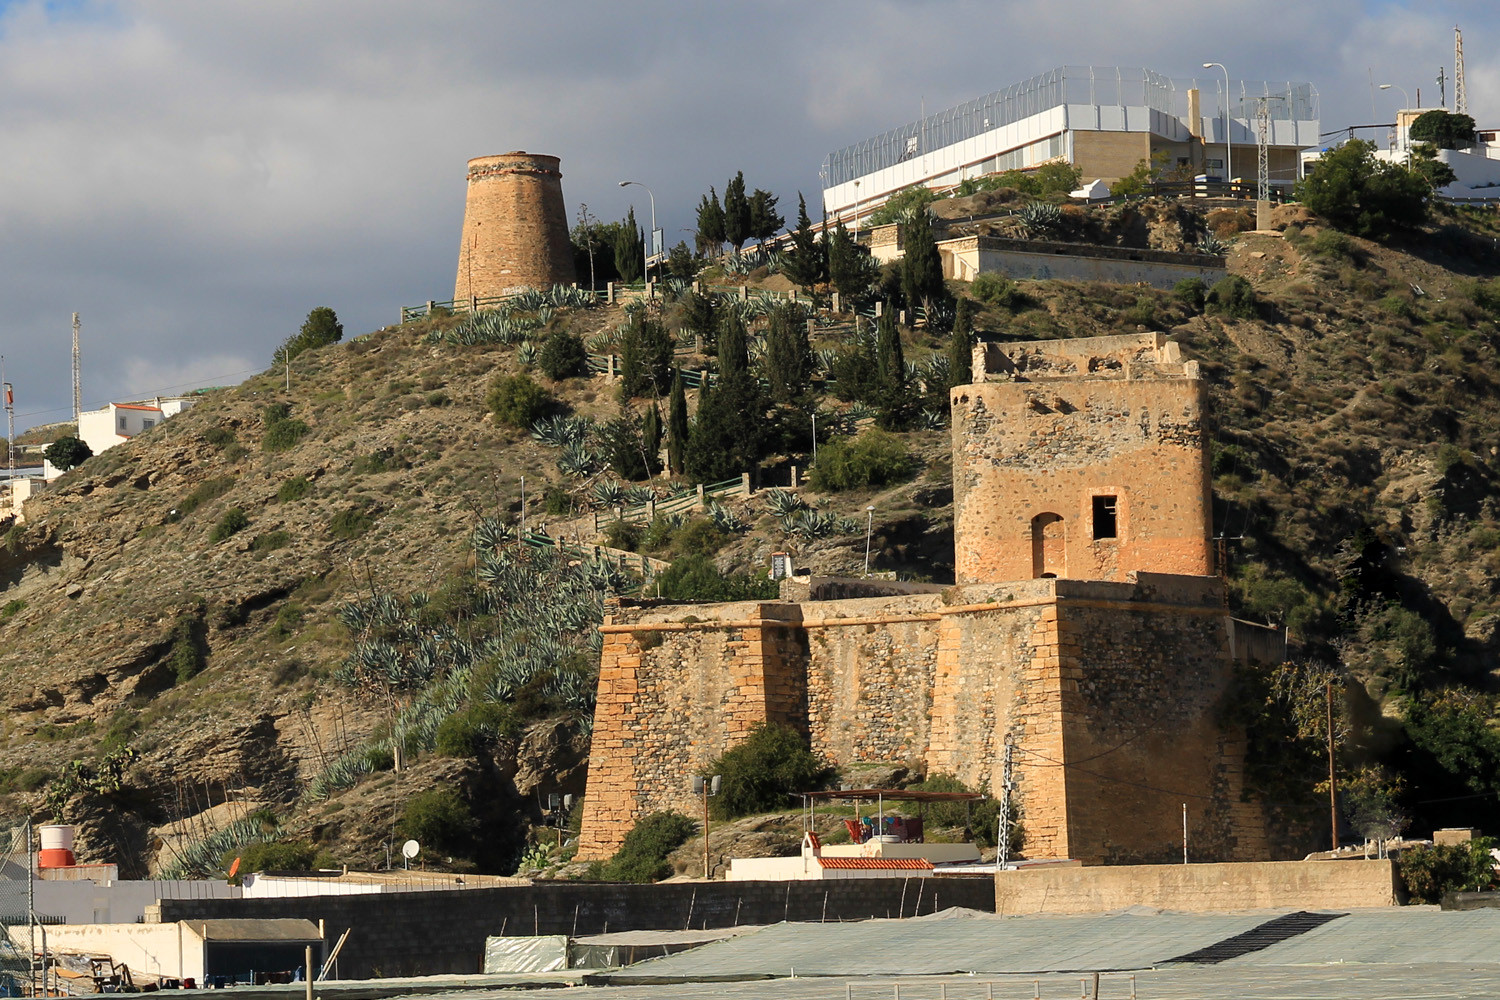 A Fortress and Watch Tower in La Rabita - Albuñol